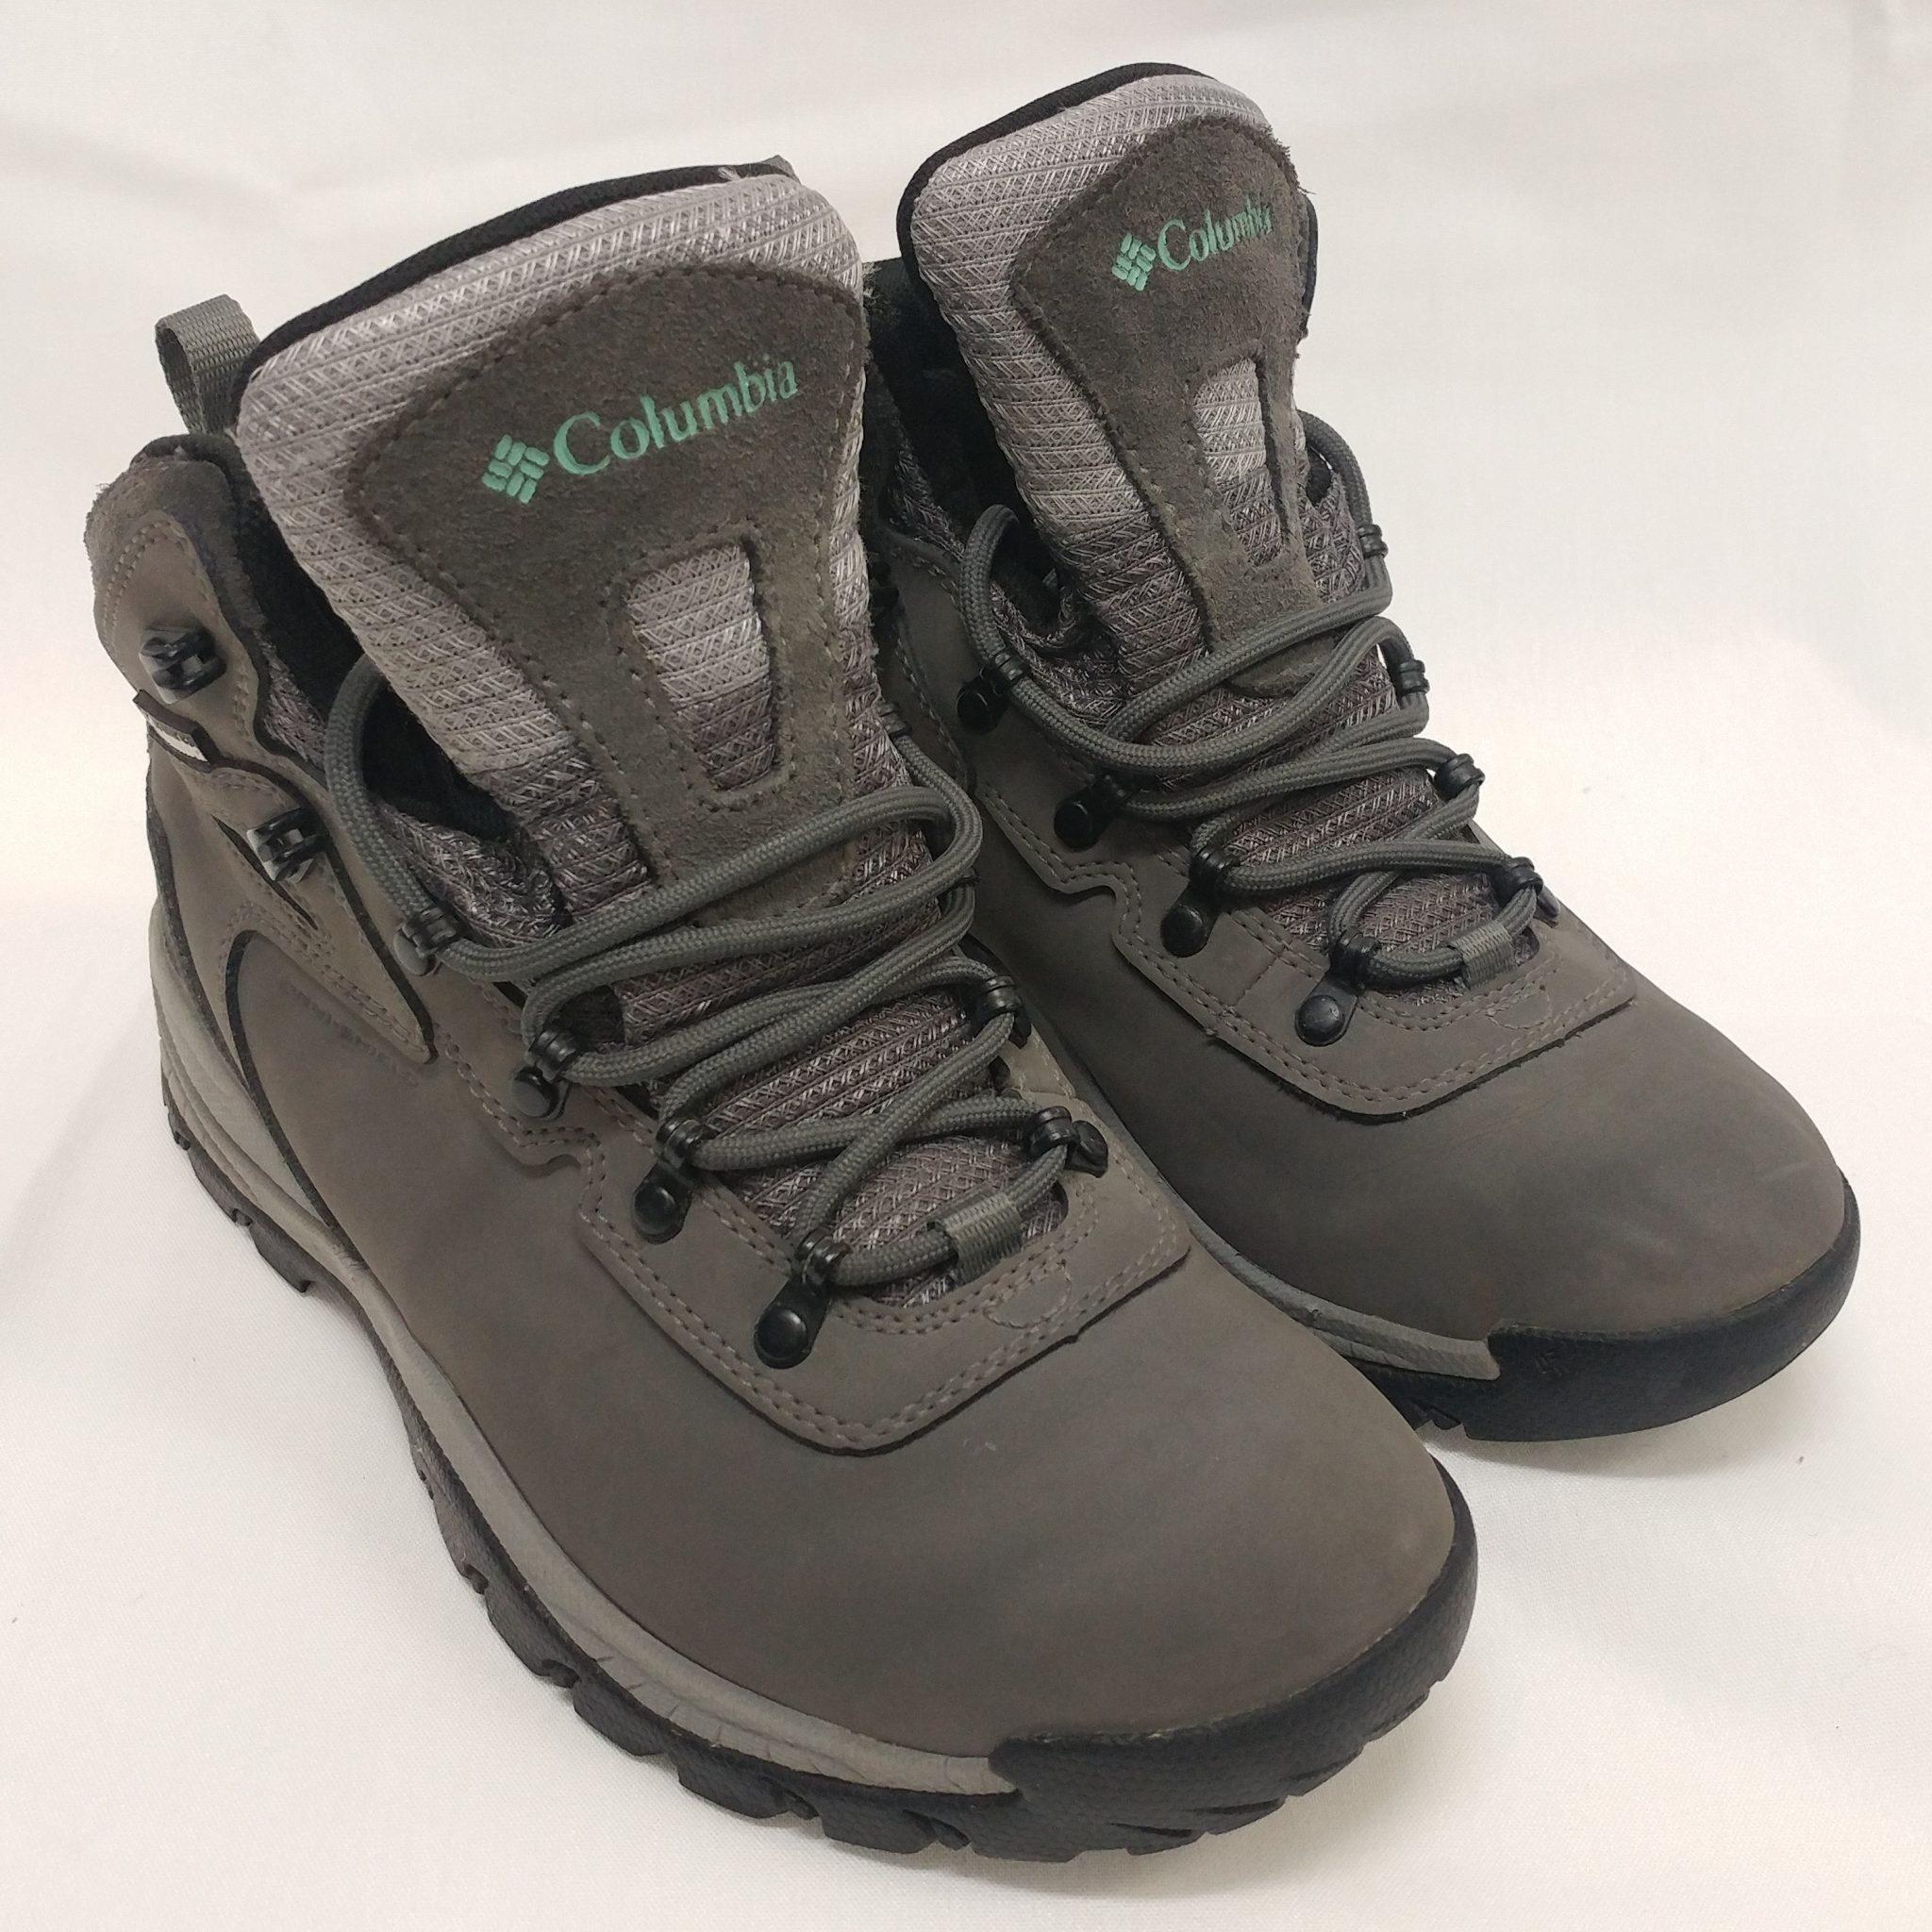 d882d9b828a Columbia Women's Newton Ridge Plus Hiking Boot Size 7 1/2 M US